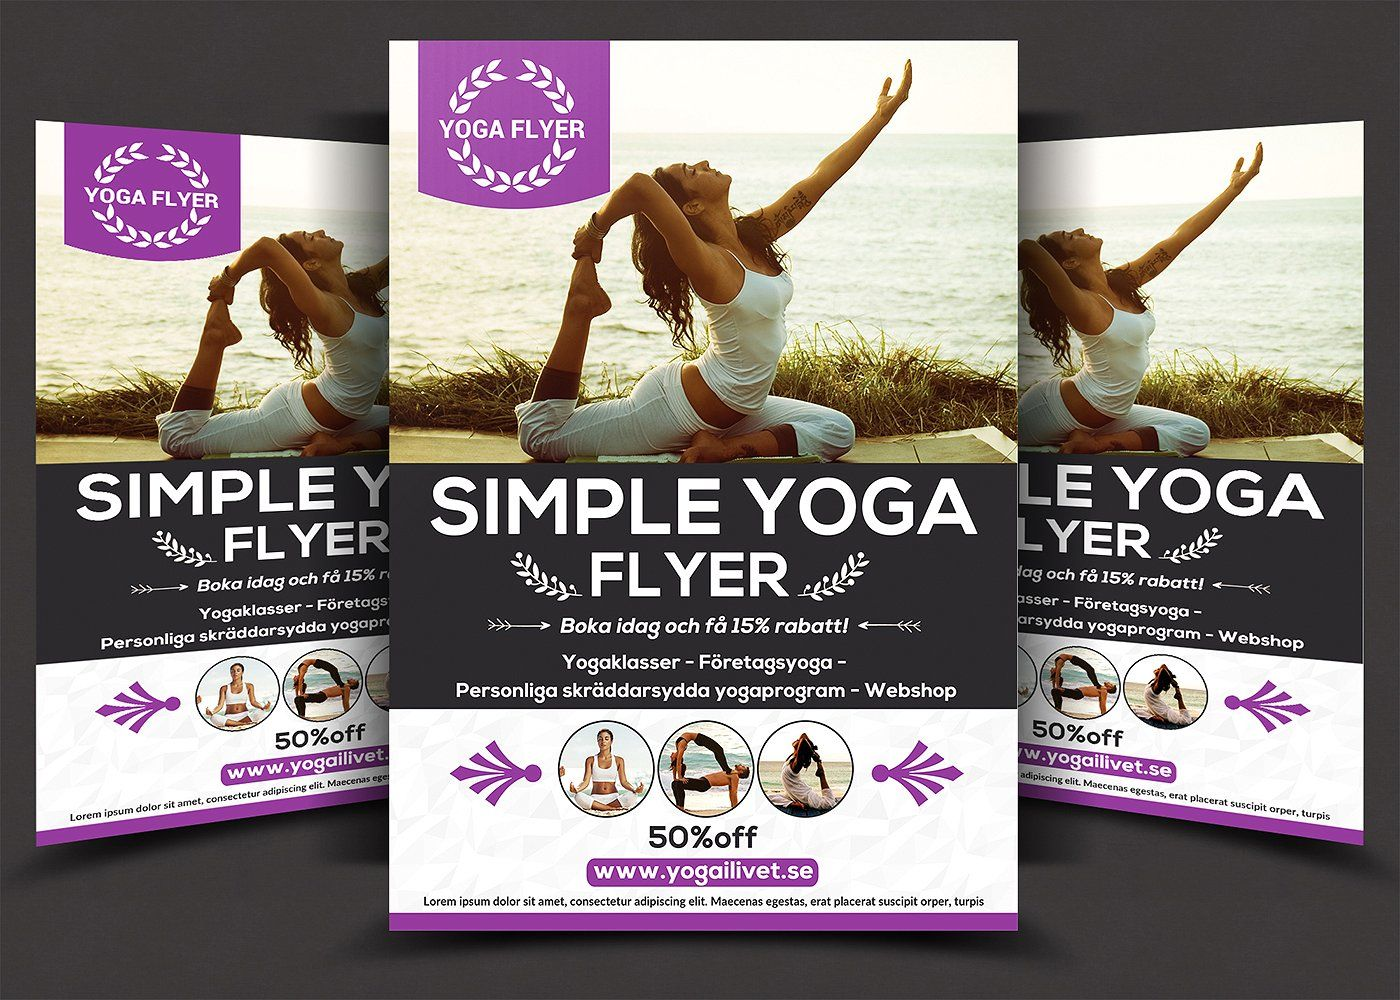 Yoga Flyer Template Psd Word And Indesign Format Yoga Wear